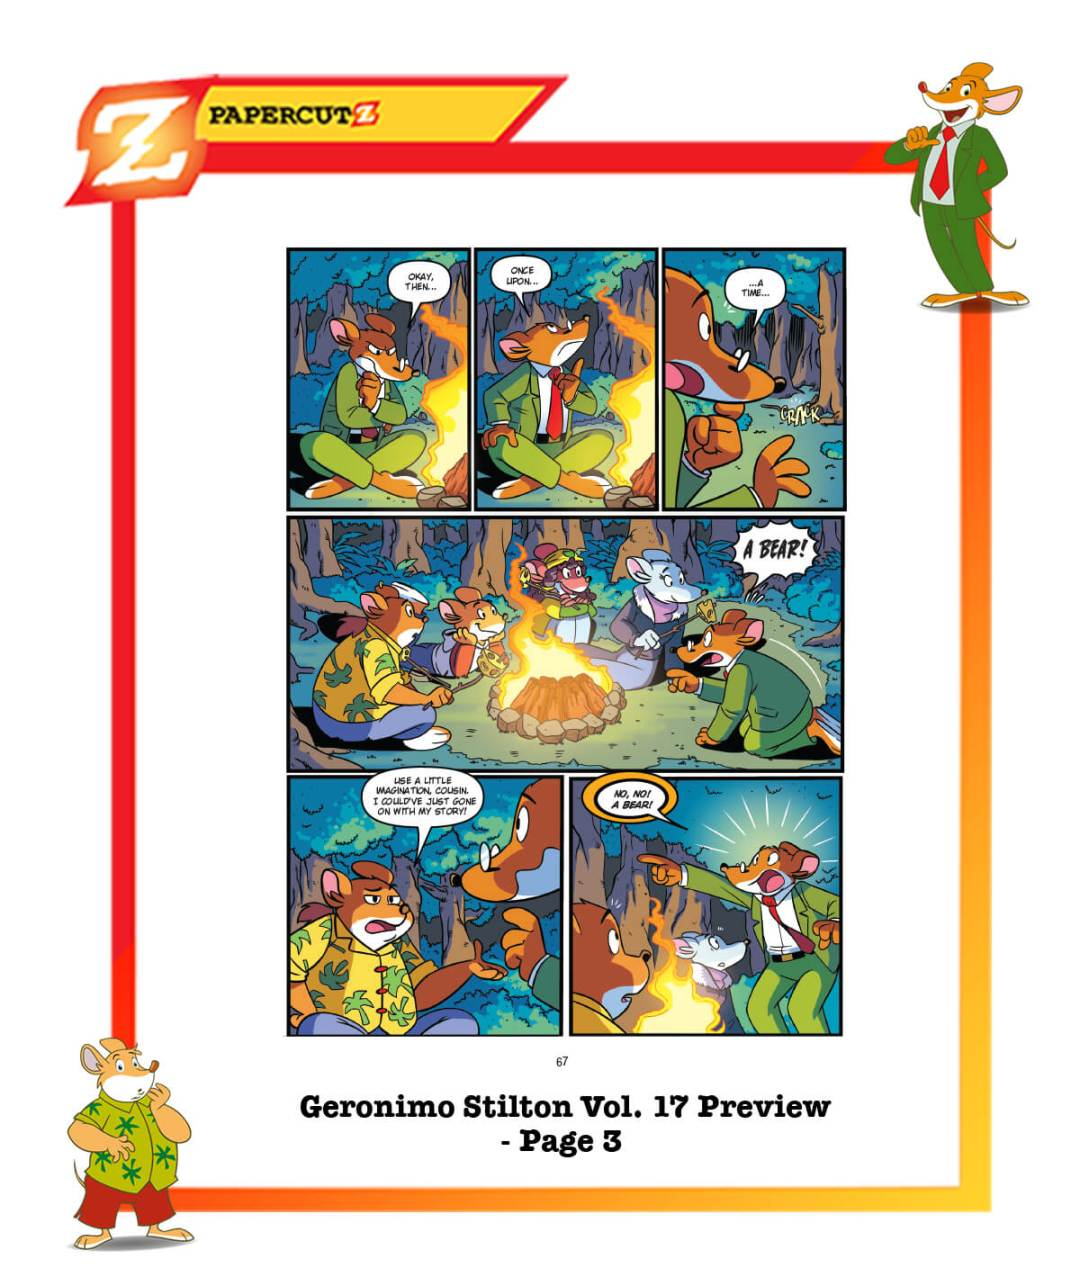 geronimo_stilton_017_preview_page03